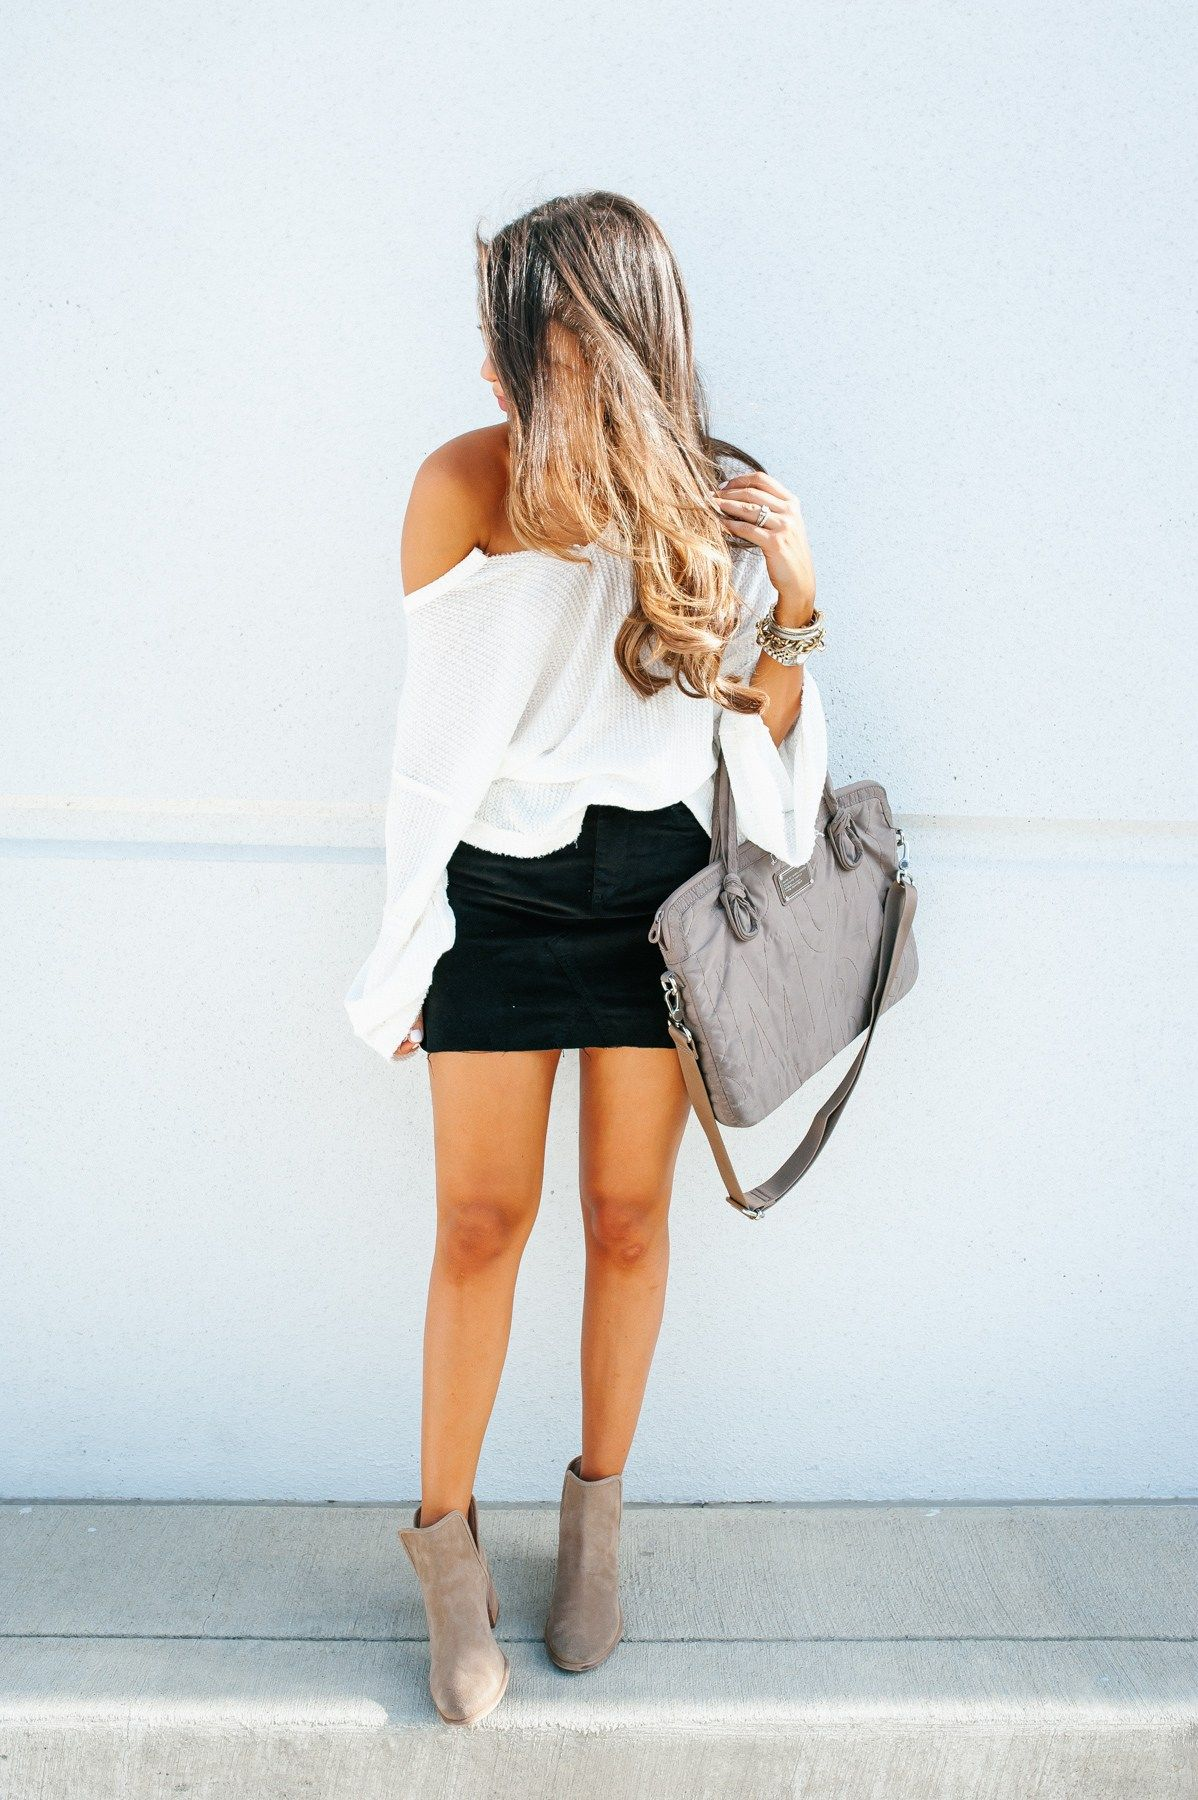 Dress Up Buttercup, back to school, Free People, senior vs